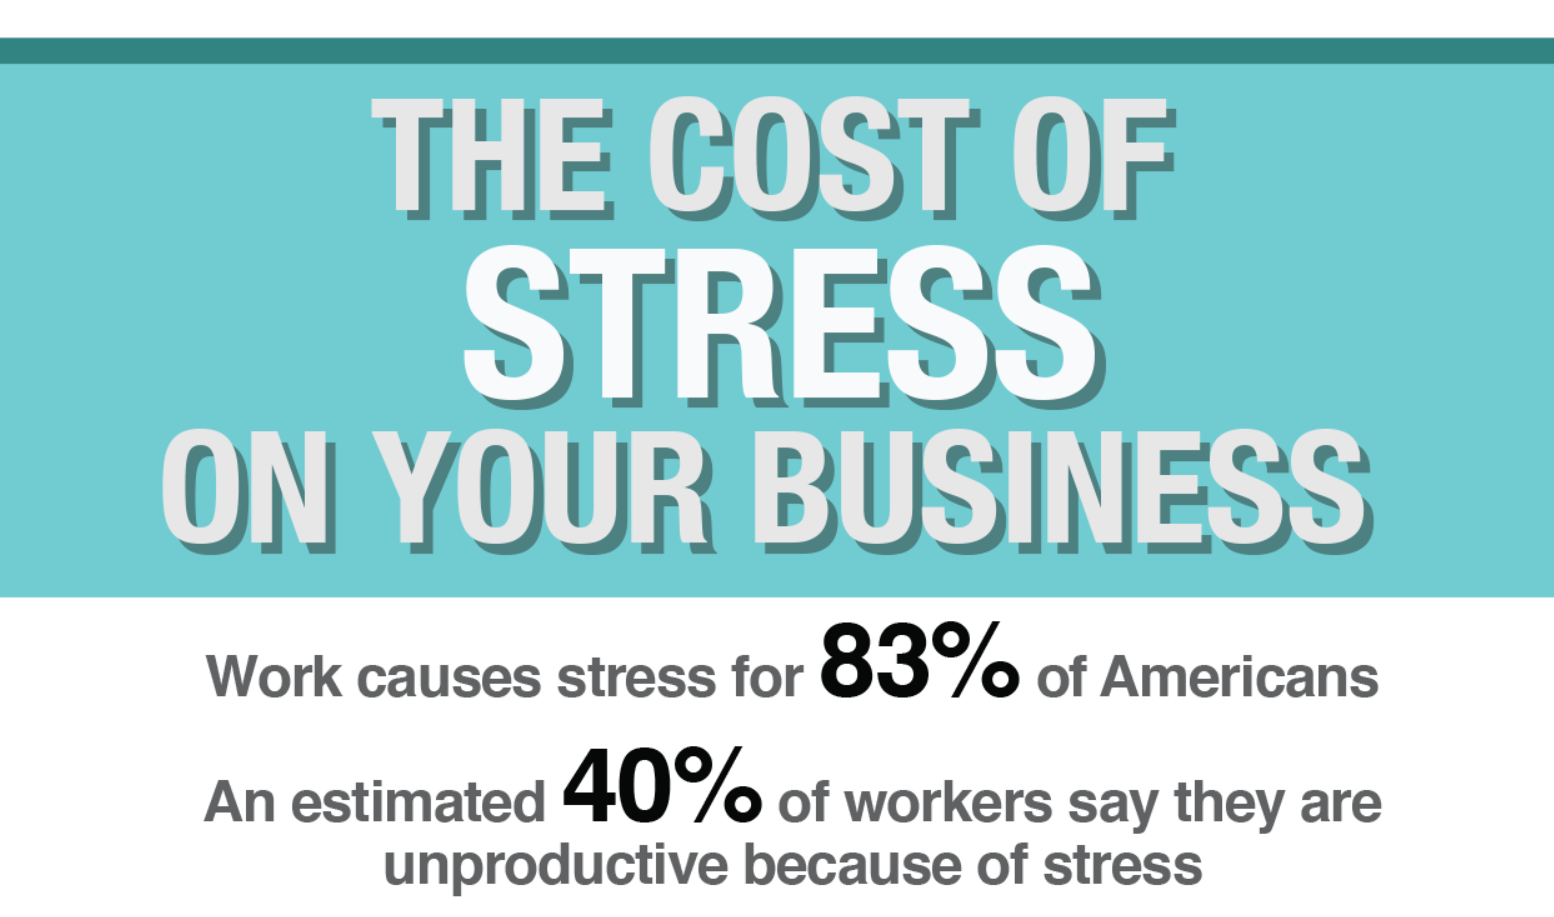 The staggering cost of stress on your business (It's probably more than you think) - infographic